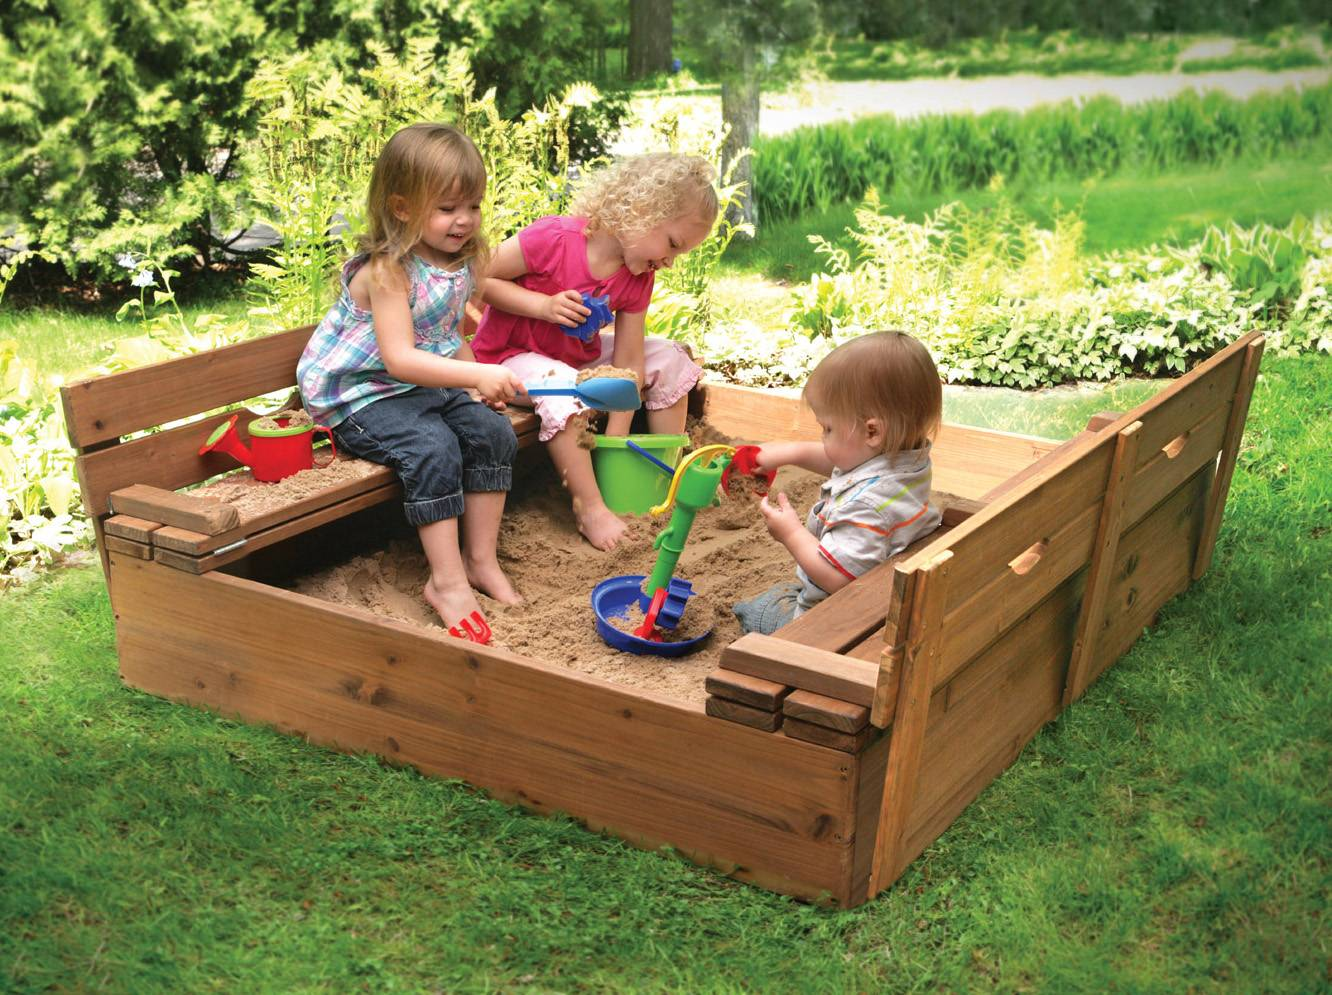 Simple Ideas To Make Your Backyard Fun And KidFriendly - Backyard fun ideas